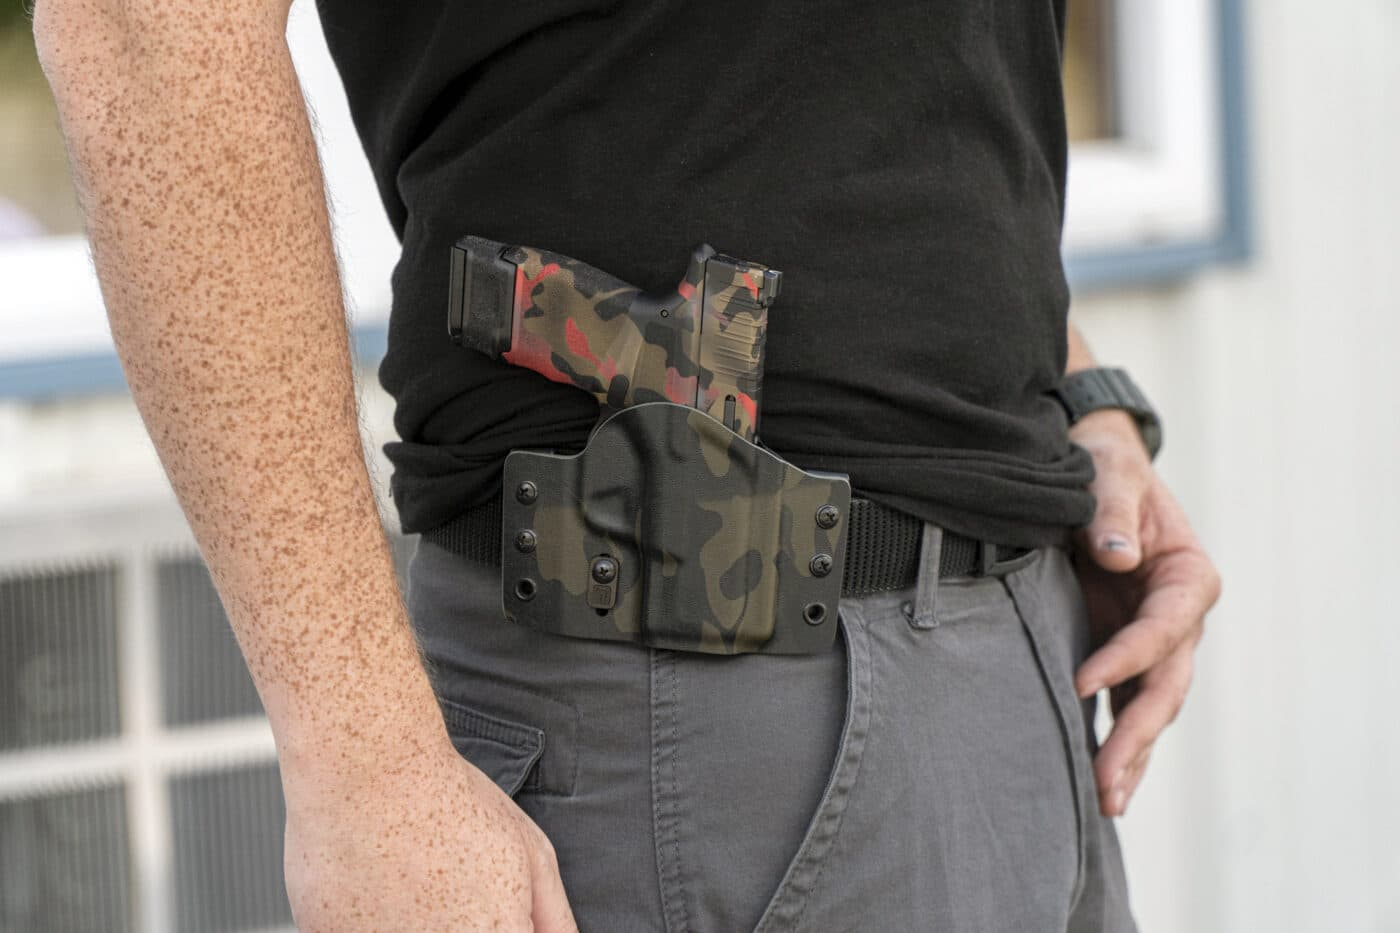 New Contour holster from Tulster being worn on man's belt